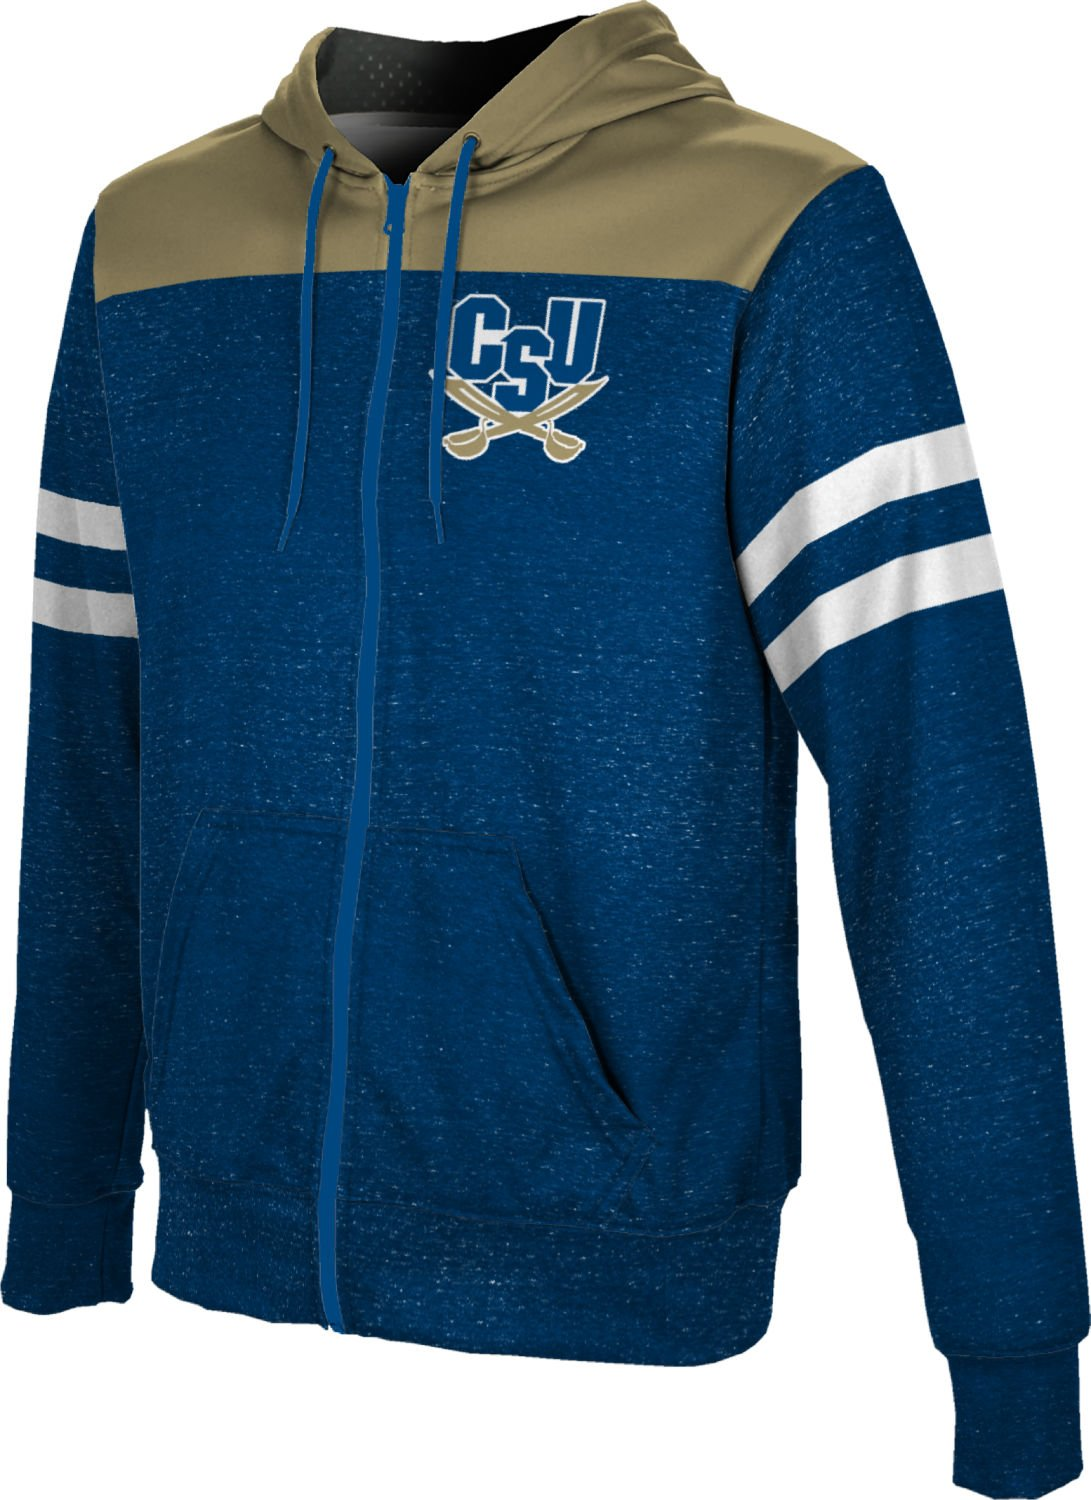 ProSphere Charleston Southern University Boys' Zipper Hoodie, School Spirit Sweatshirt (Gameday) FD011 Blue and Gold